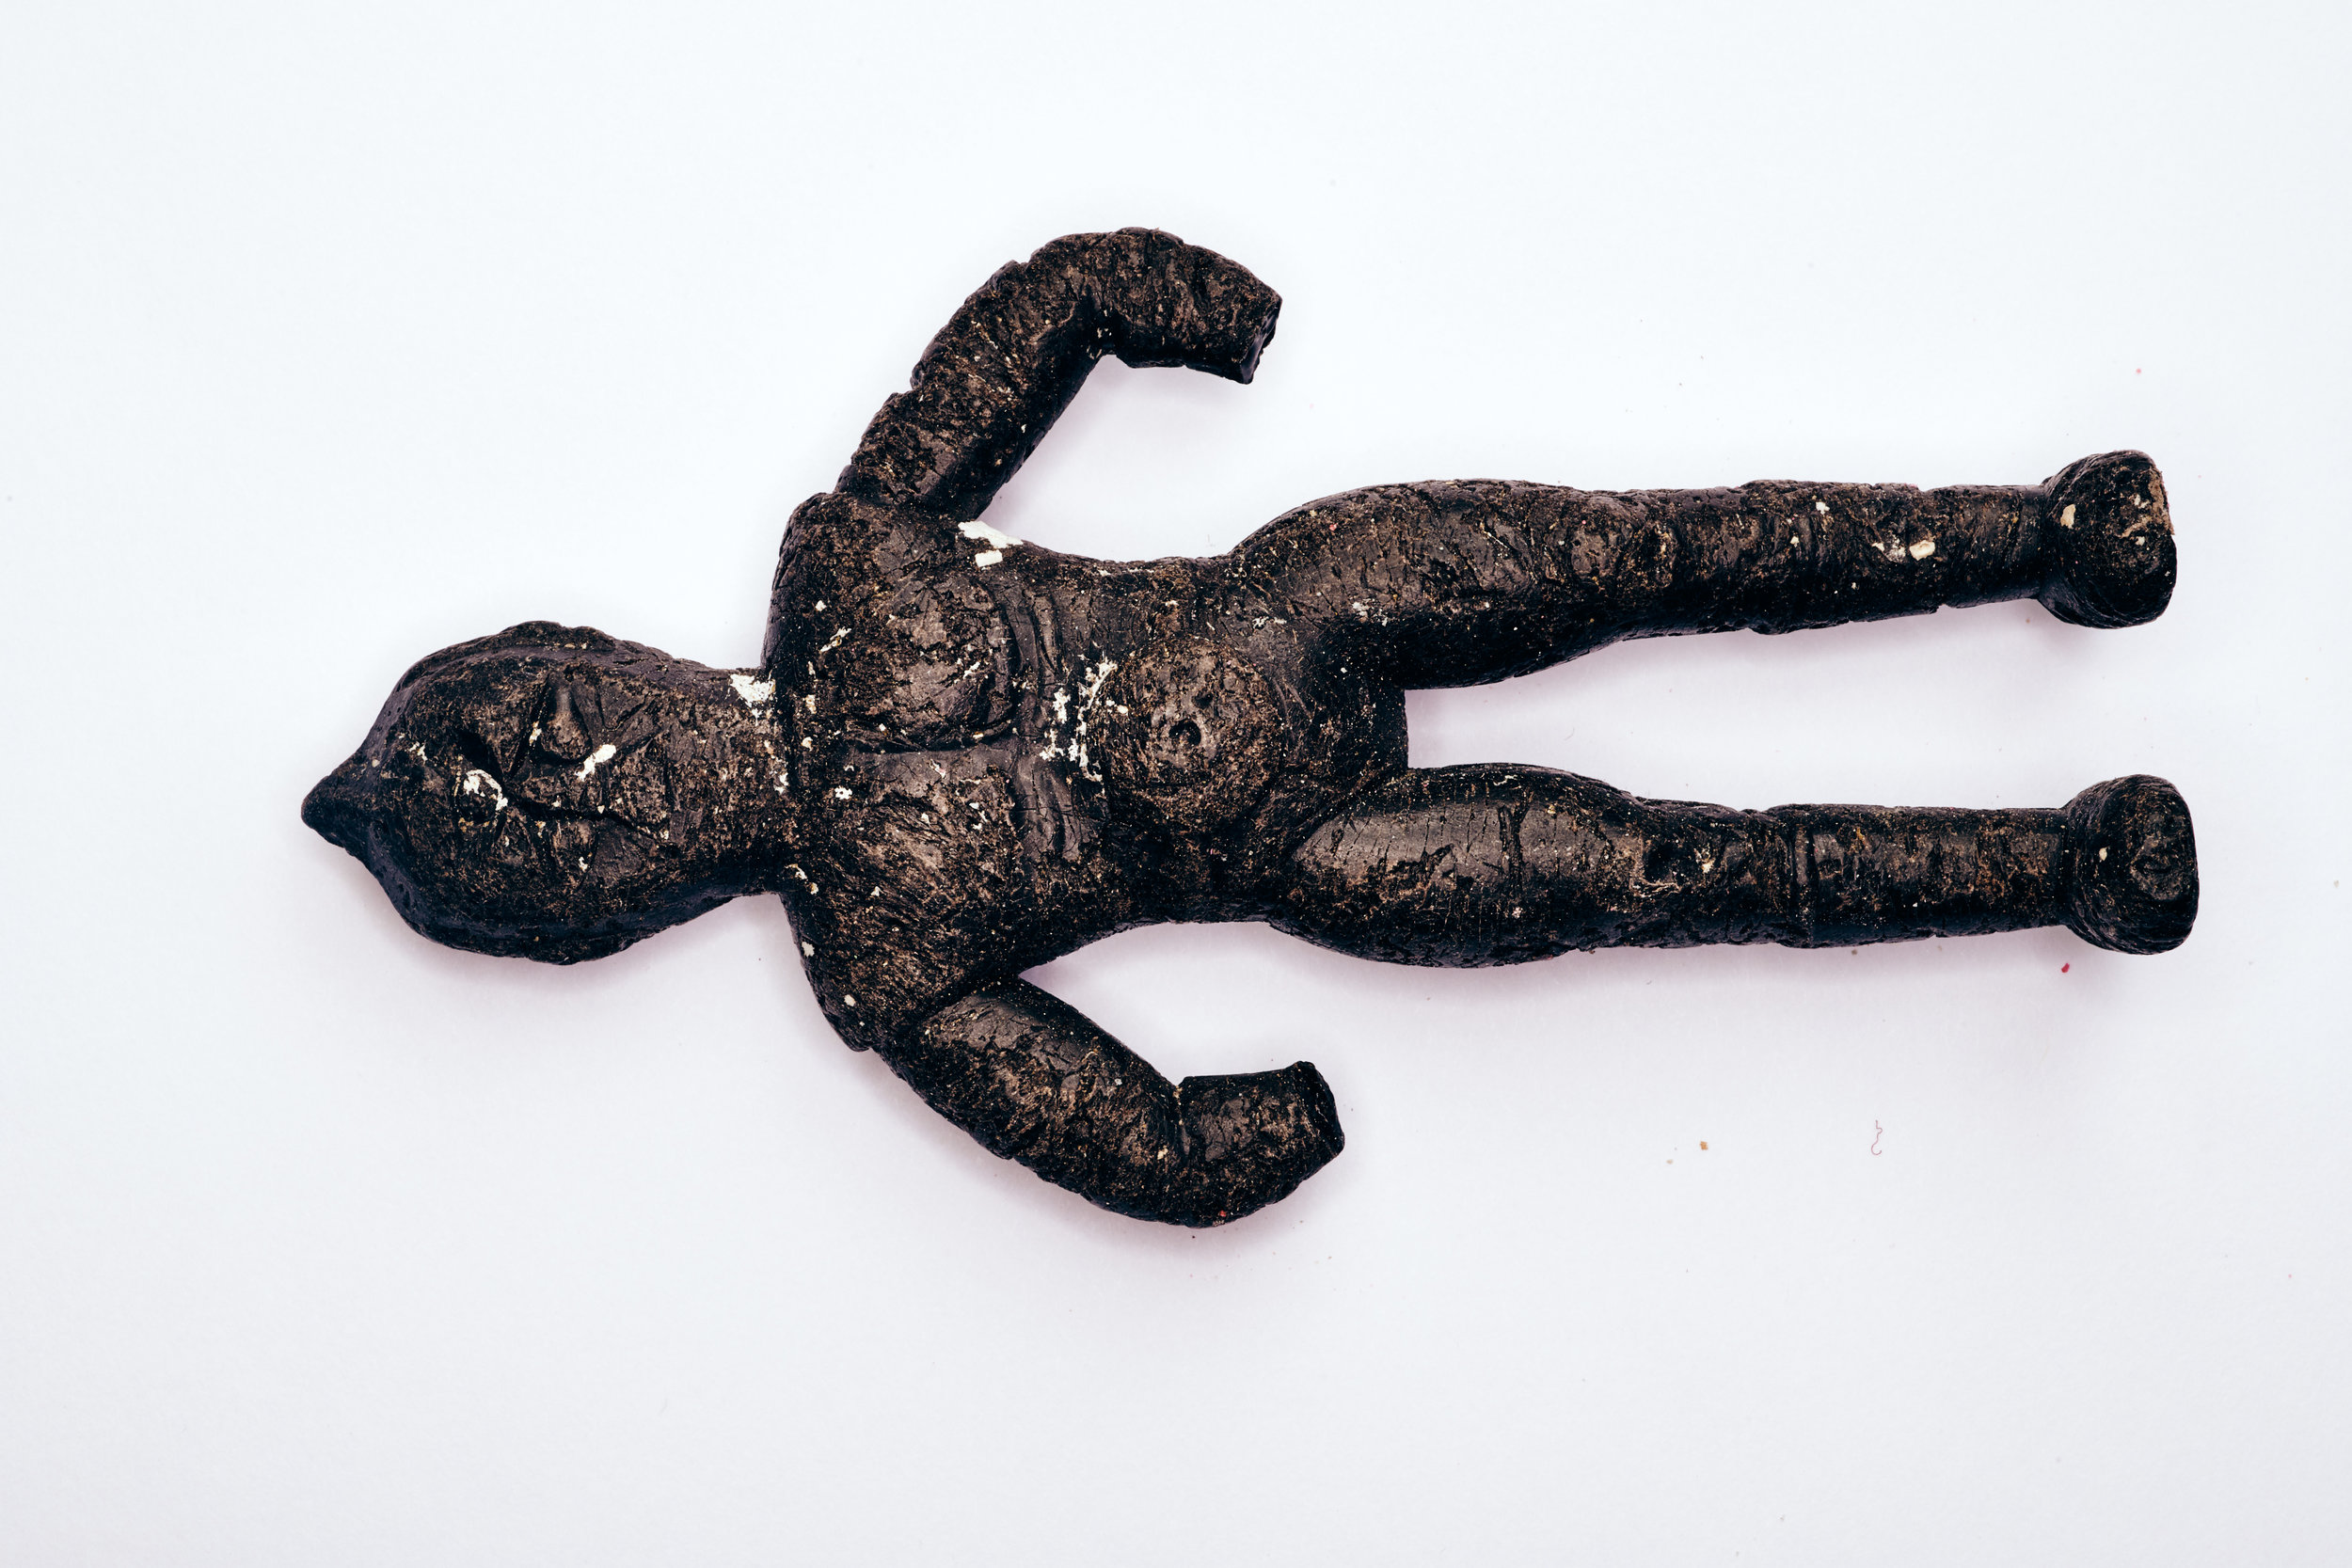 Photograph of a plastic action figure found in a sea bird.